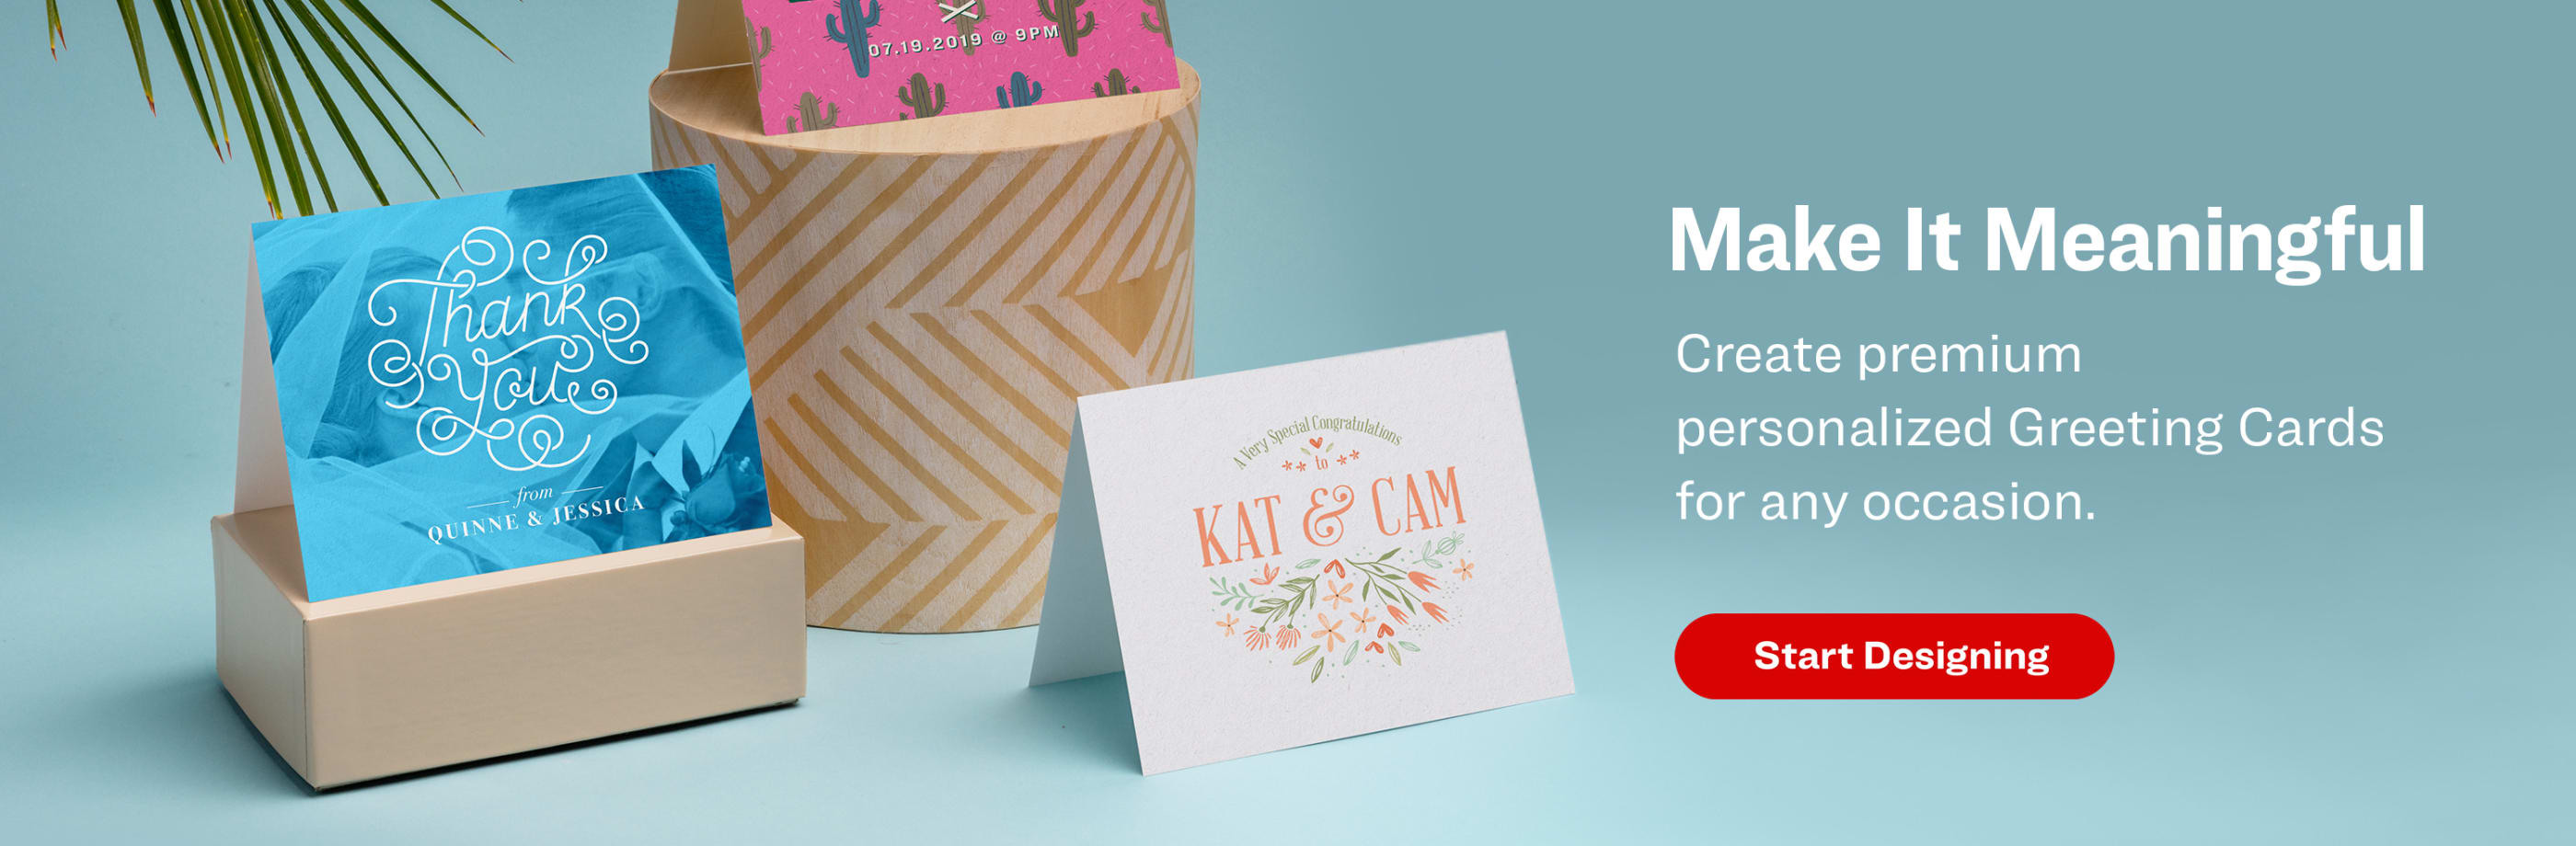 Make It Meaningful. Create premium personalized greeting cards for any occasion.